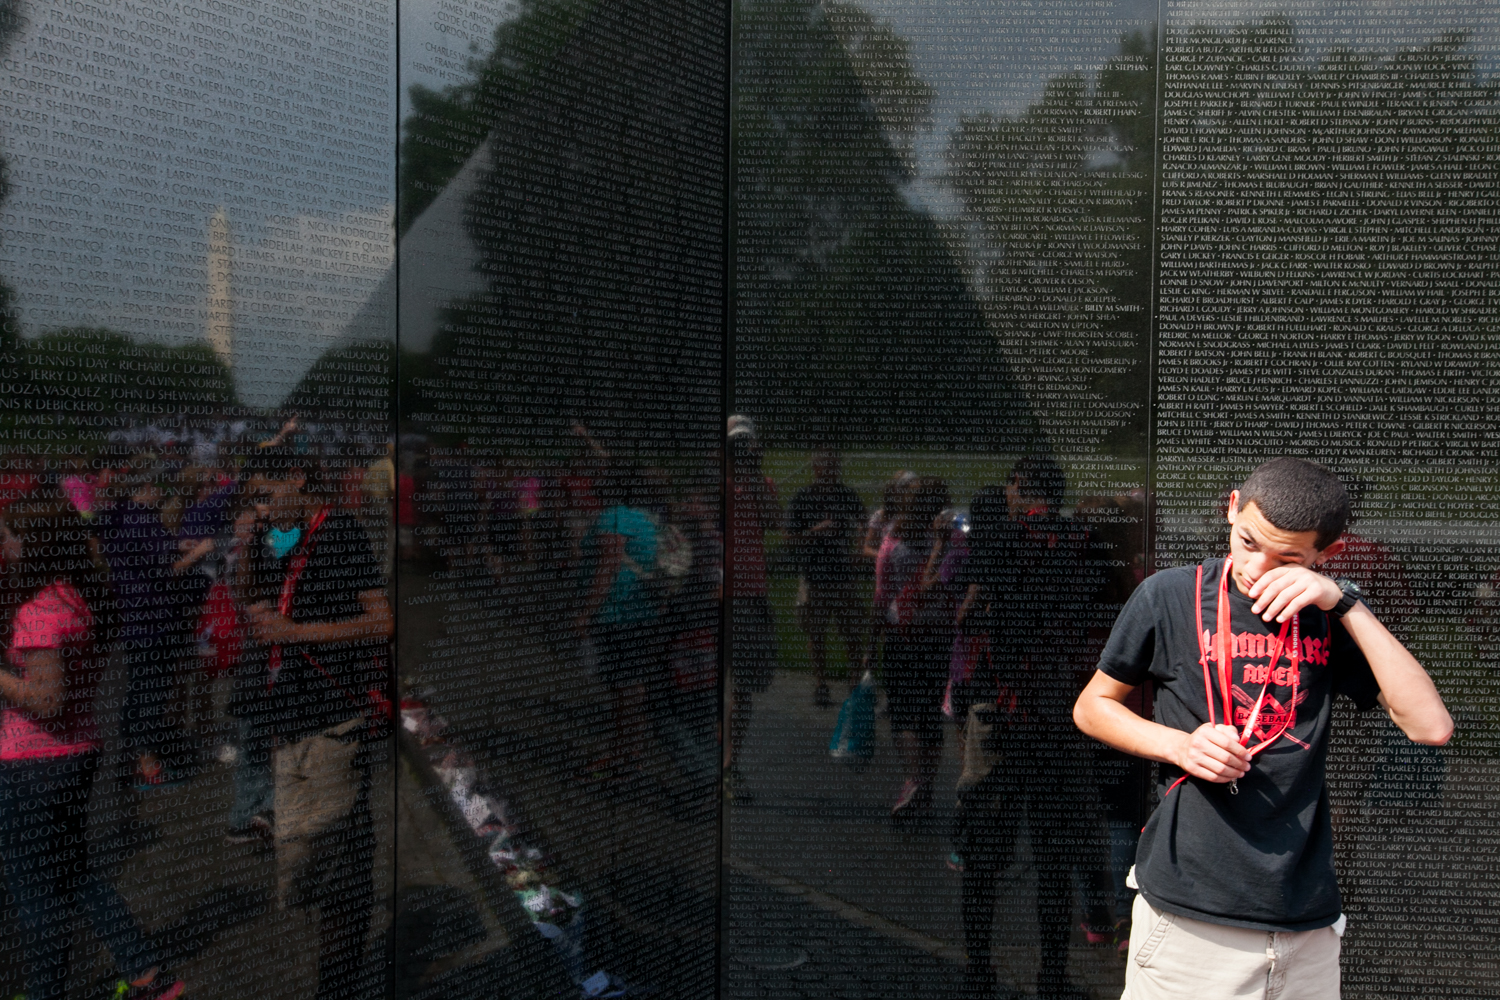 Wiping a tear at the Vietnam Memorial